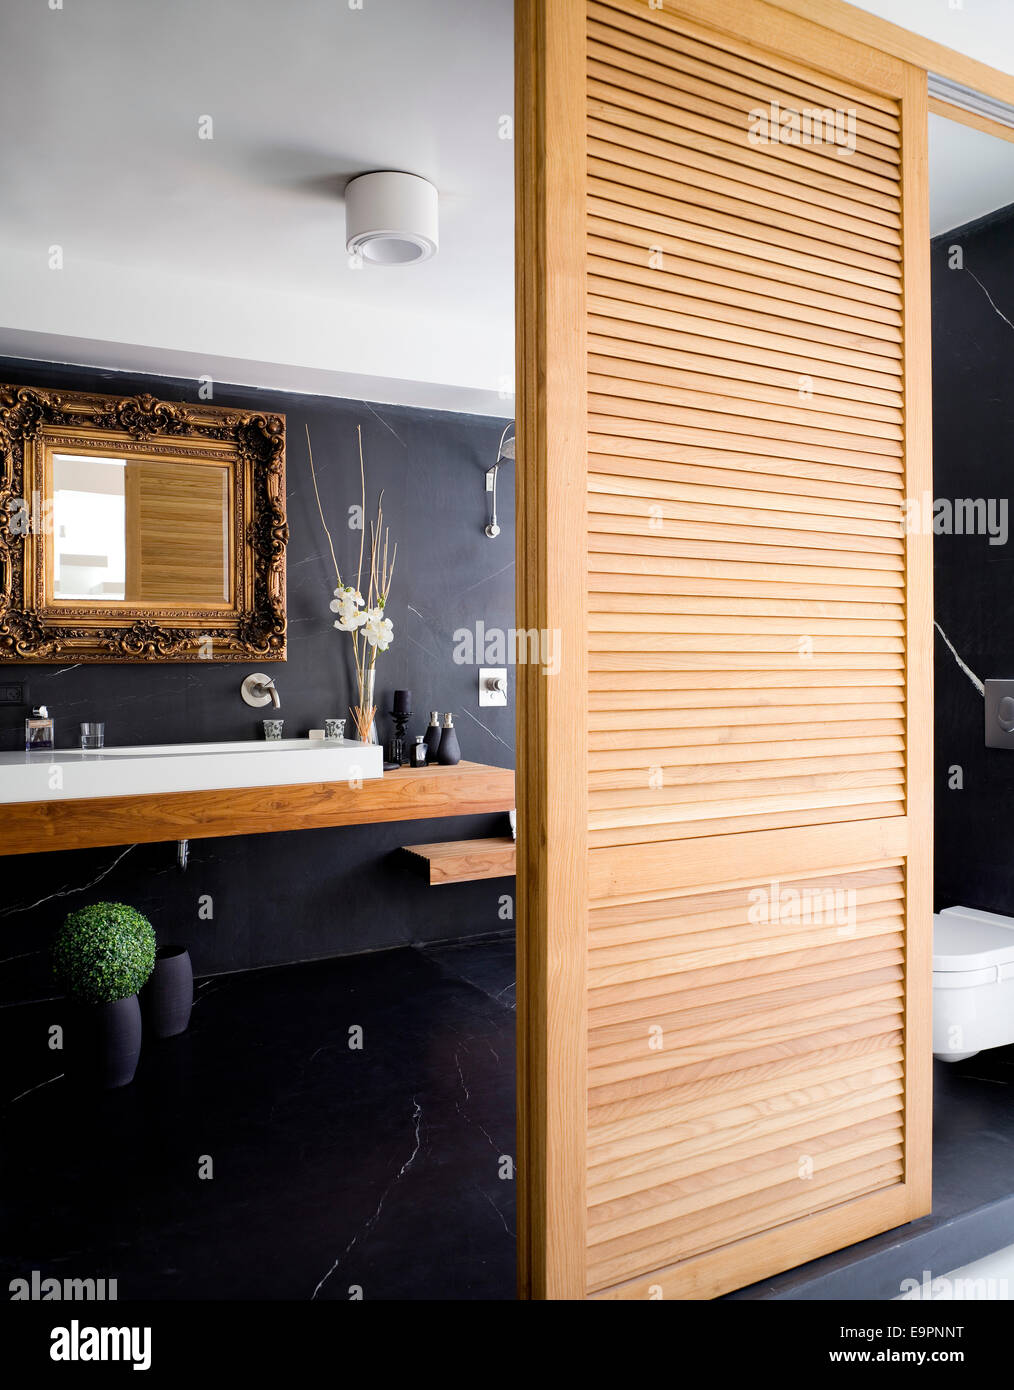 Bathroom behind sliding wooden louvered doors in Hilit home, Israel ...